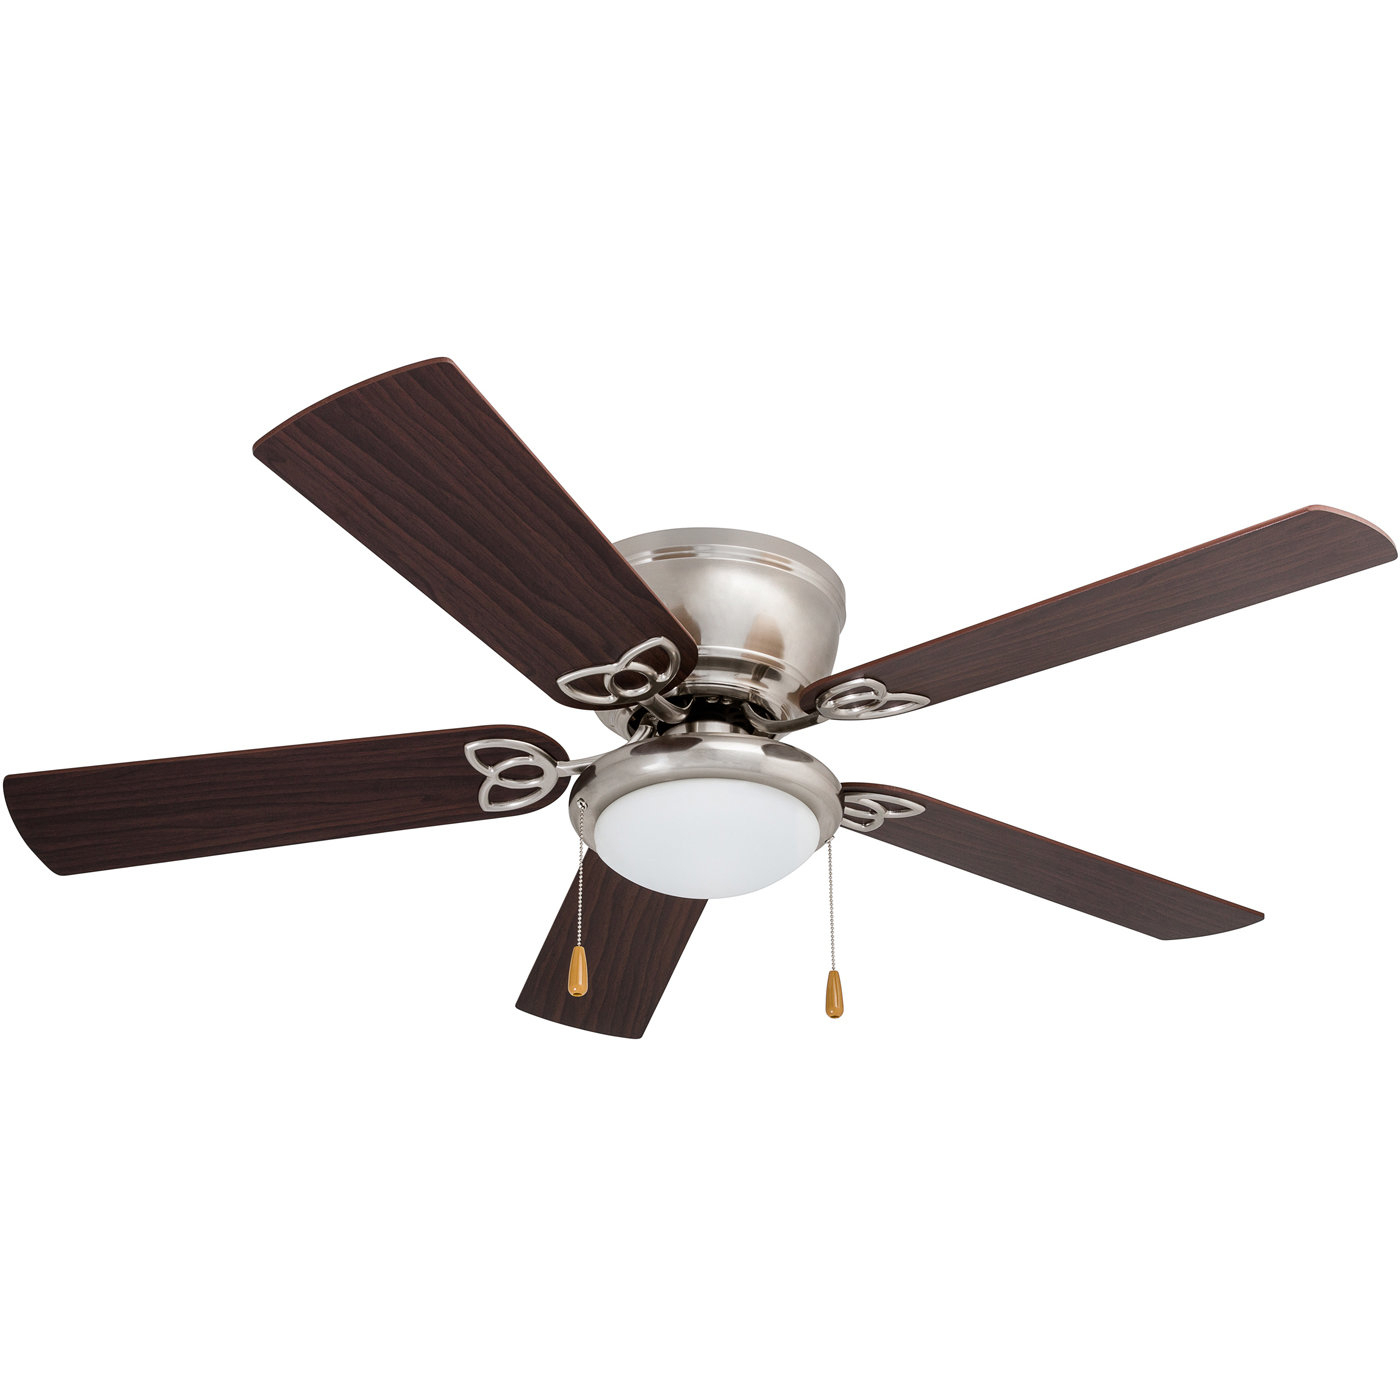 "52"" Mattias 5 Blade Ceiling Fan, Light Kit Included Within Current The Kensington 5 Blade Ceiling Fans (View 11 of 20)"